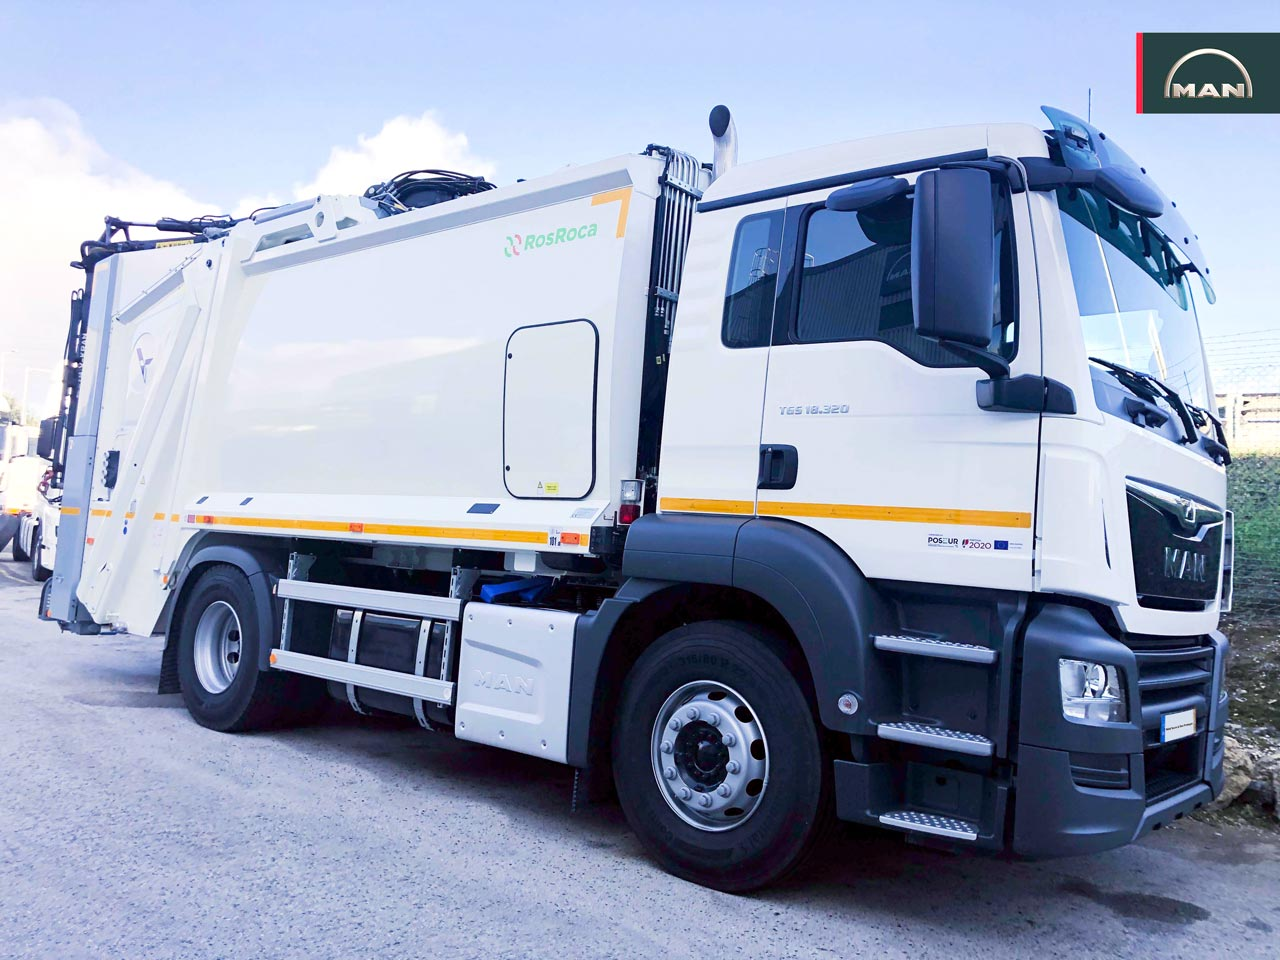 MAN TGM 18.320 - Photo: MAN Truck & Bus